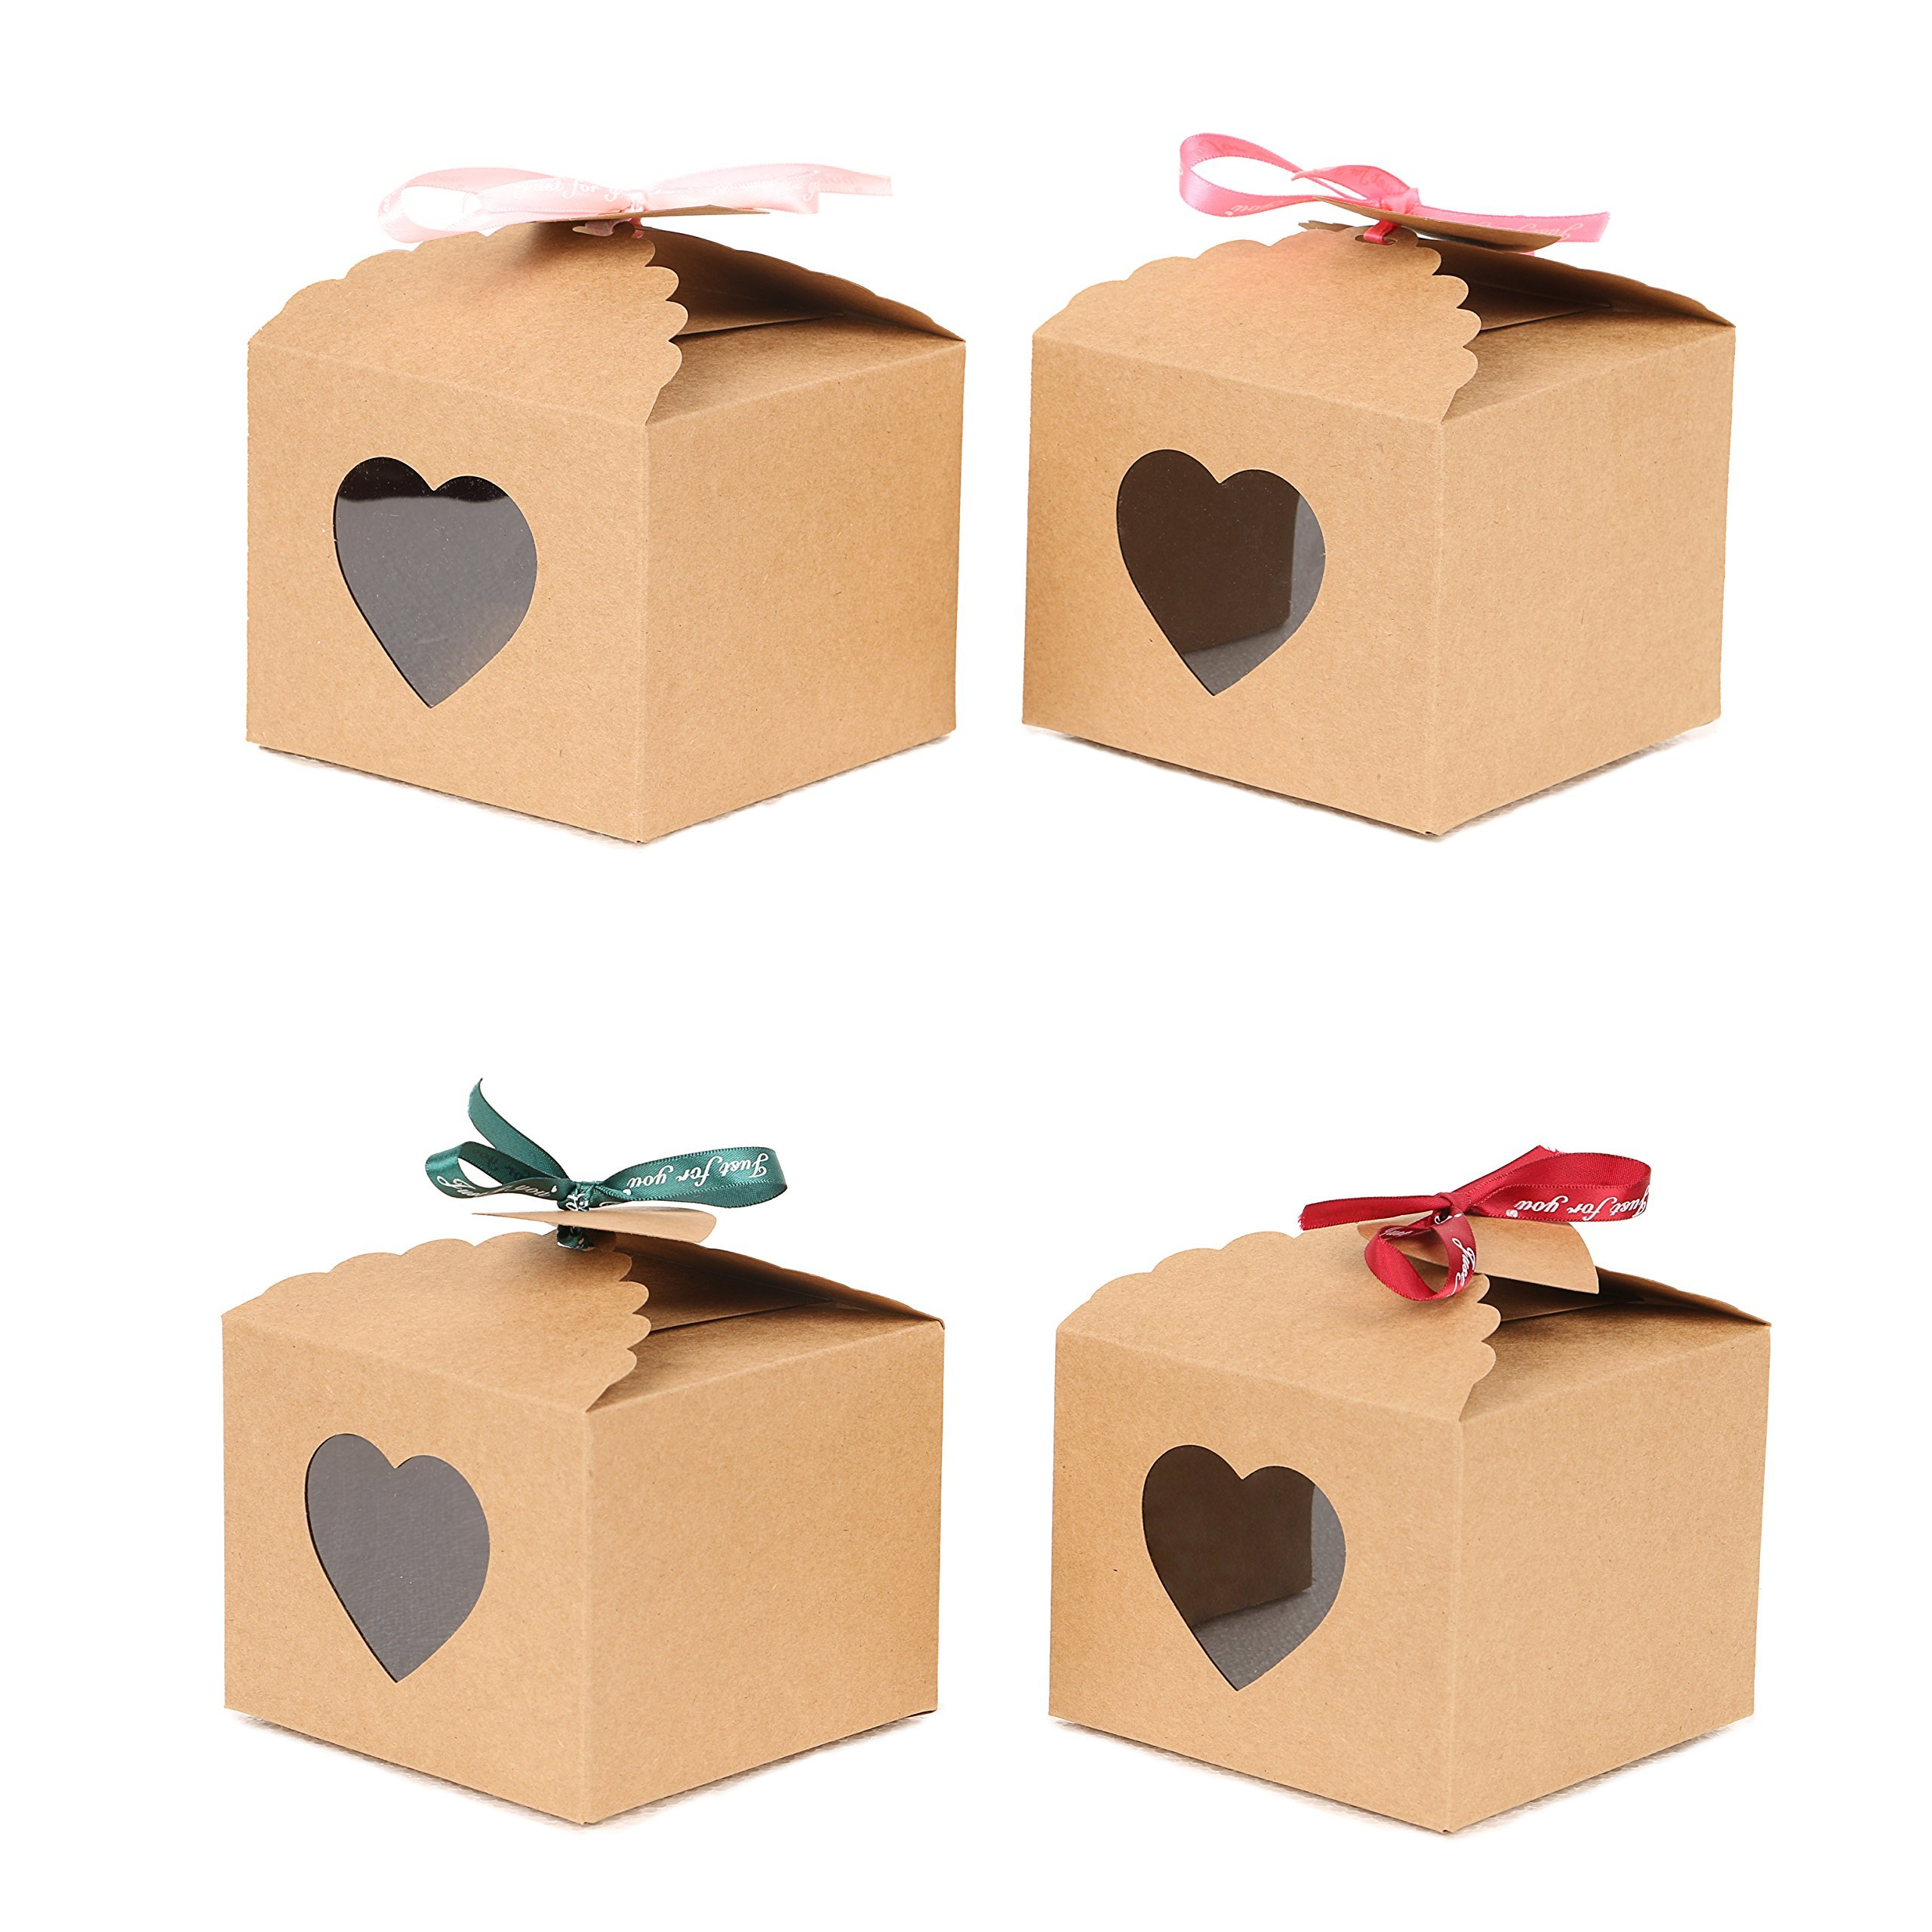 YuSang Kraft Boxes with Tags and Ribbons for Cake Candy Treat Holiday Party Birthday Homemade Favor 5x5x4 Inch (Pack of 16)